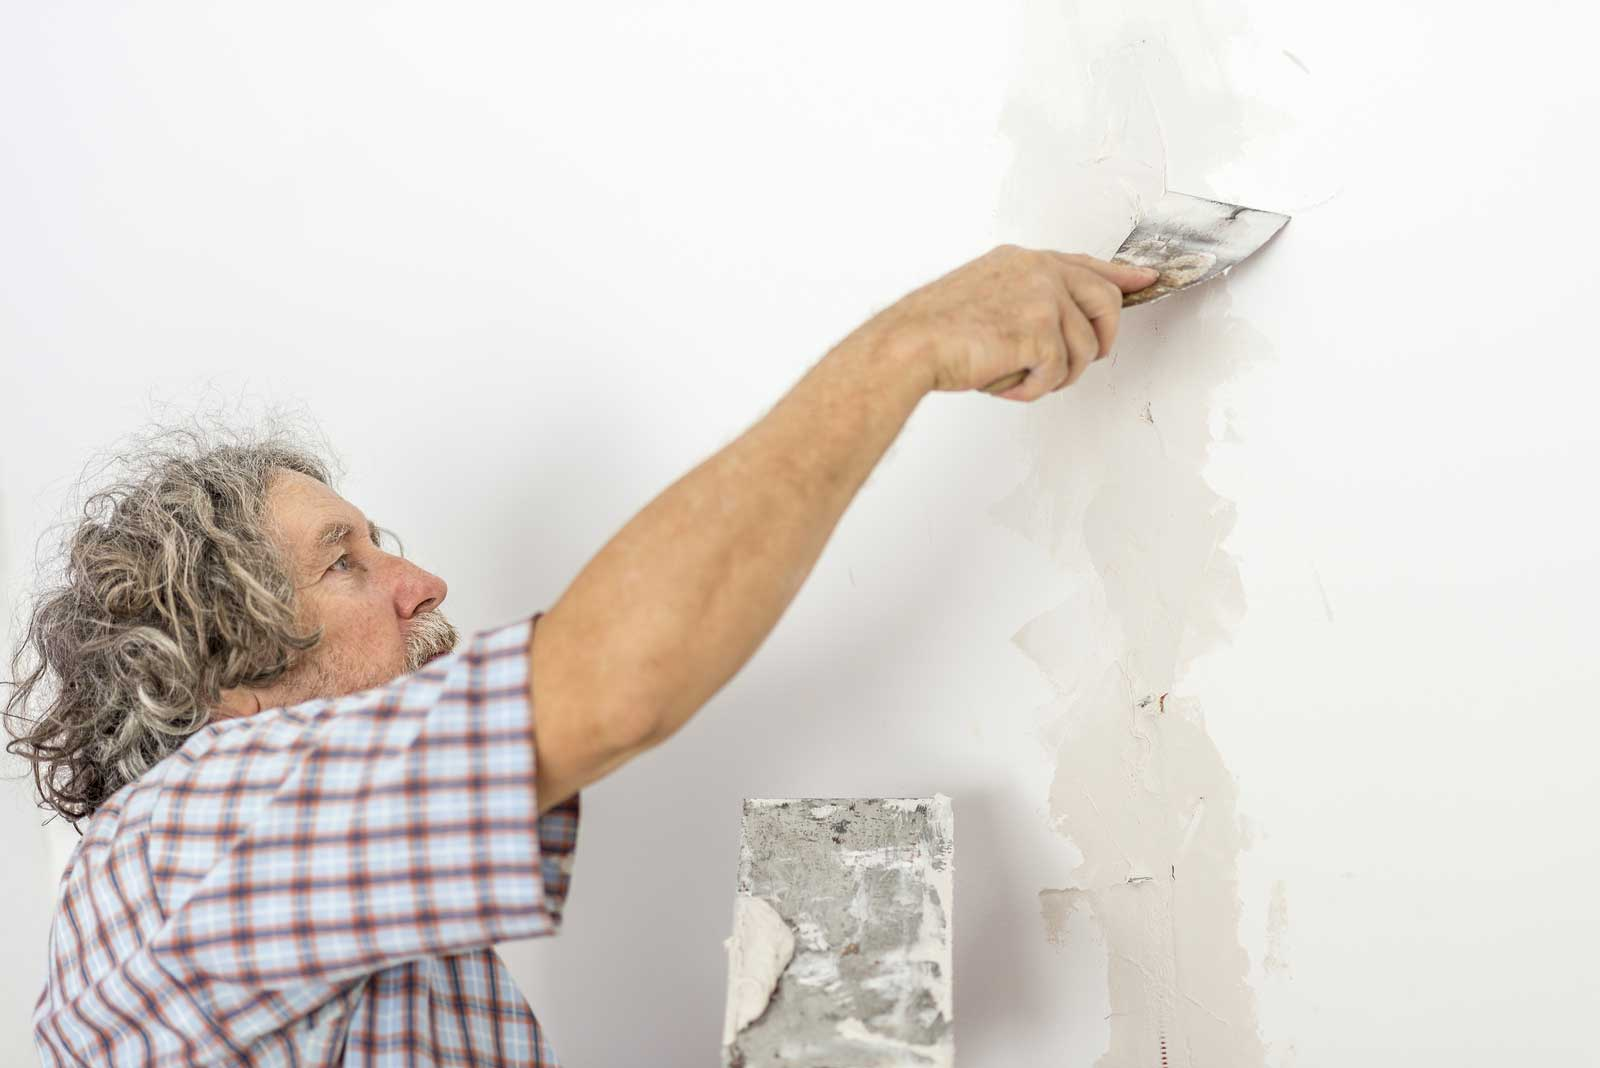 Man repairing large vertical crack in sheetrock with drywall spatula